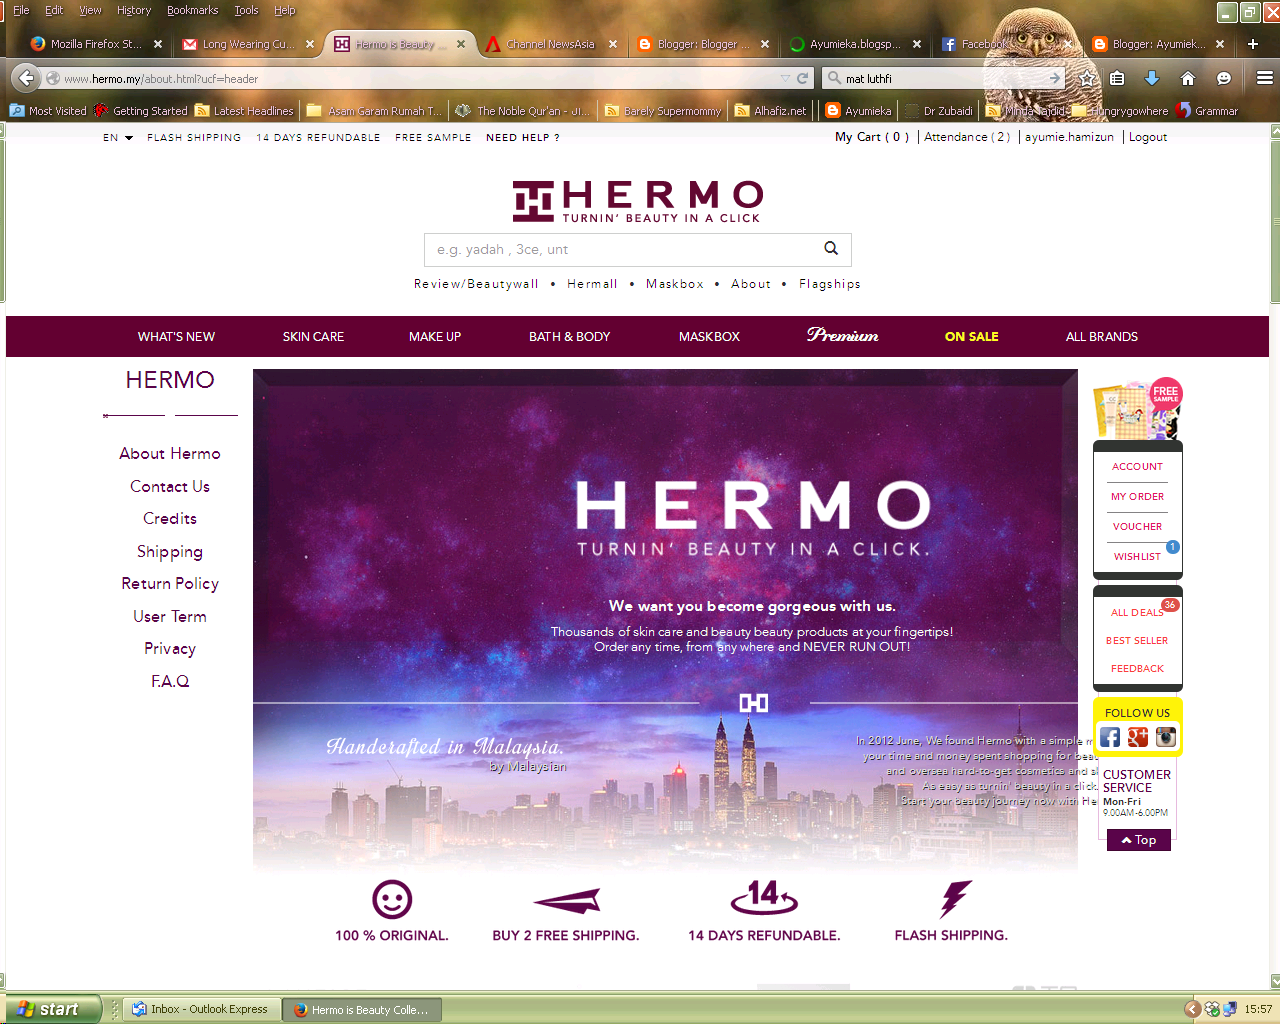 http://www.hermo.my/